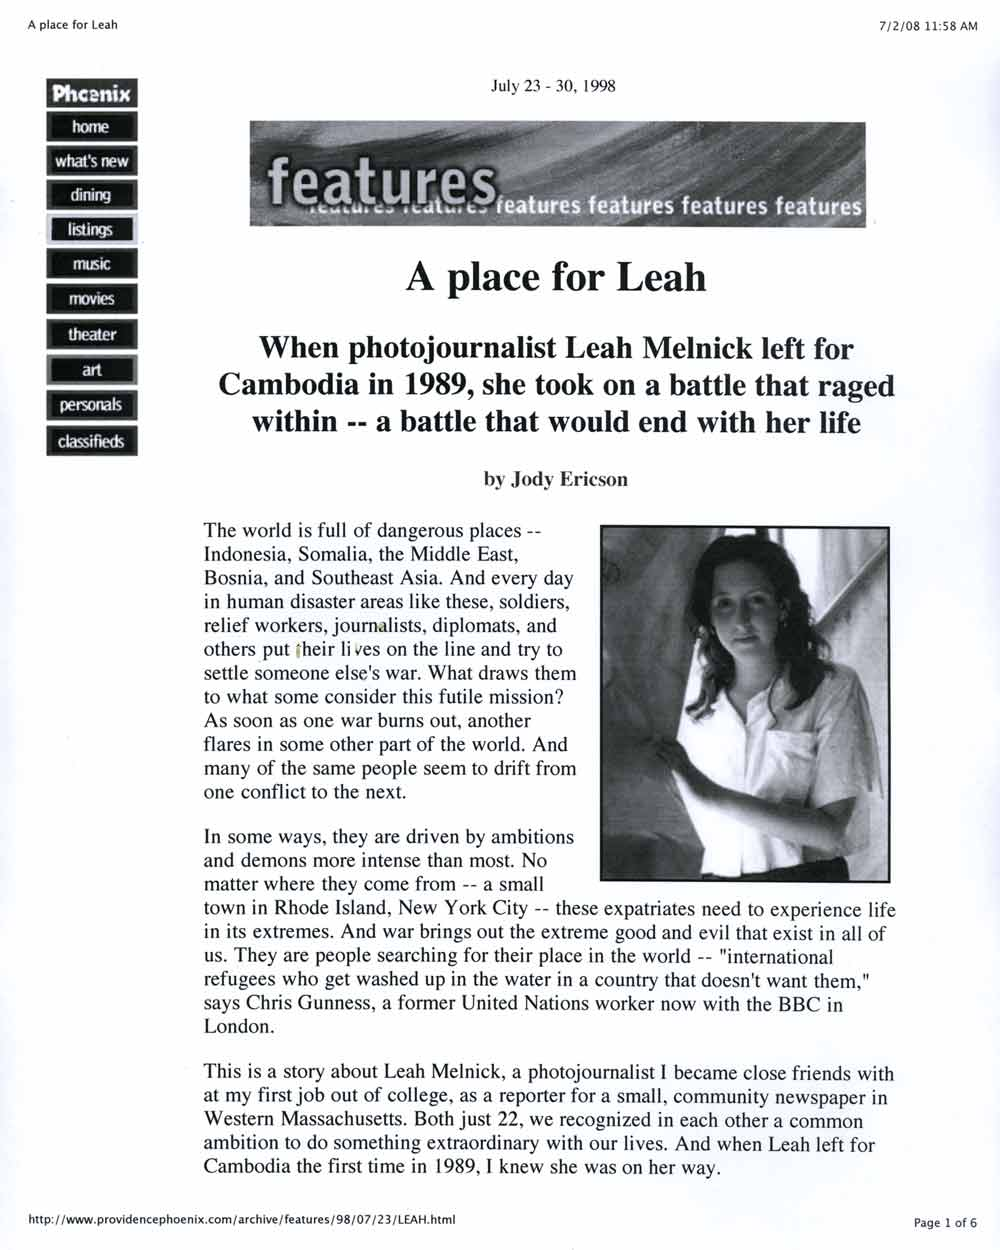 A Place for Leah, pg 1